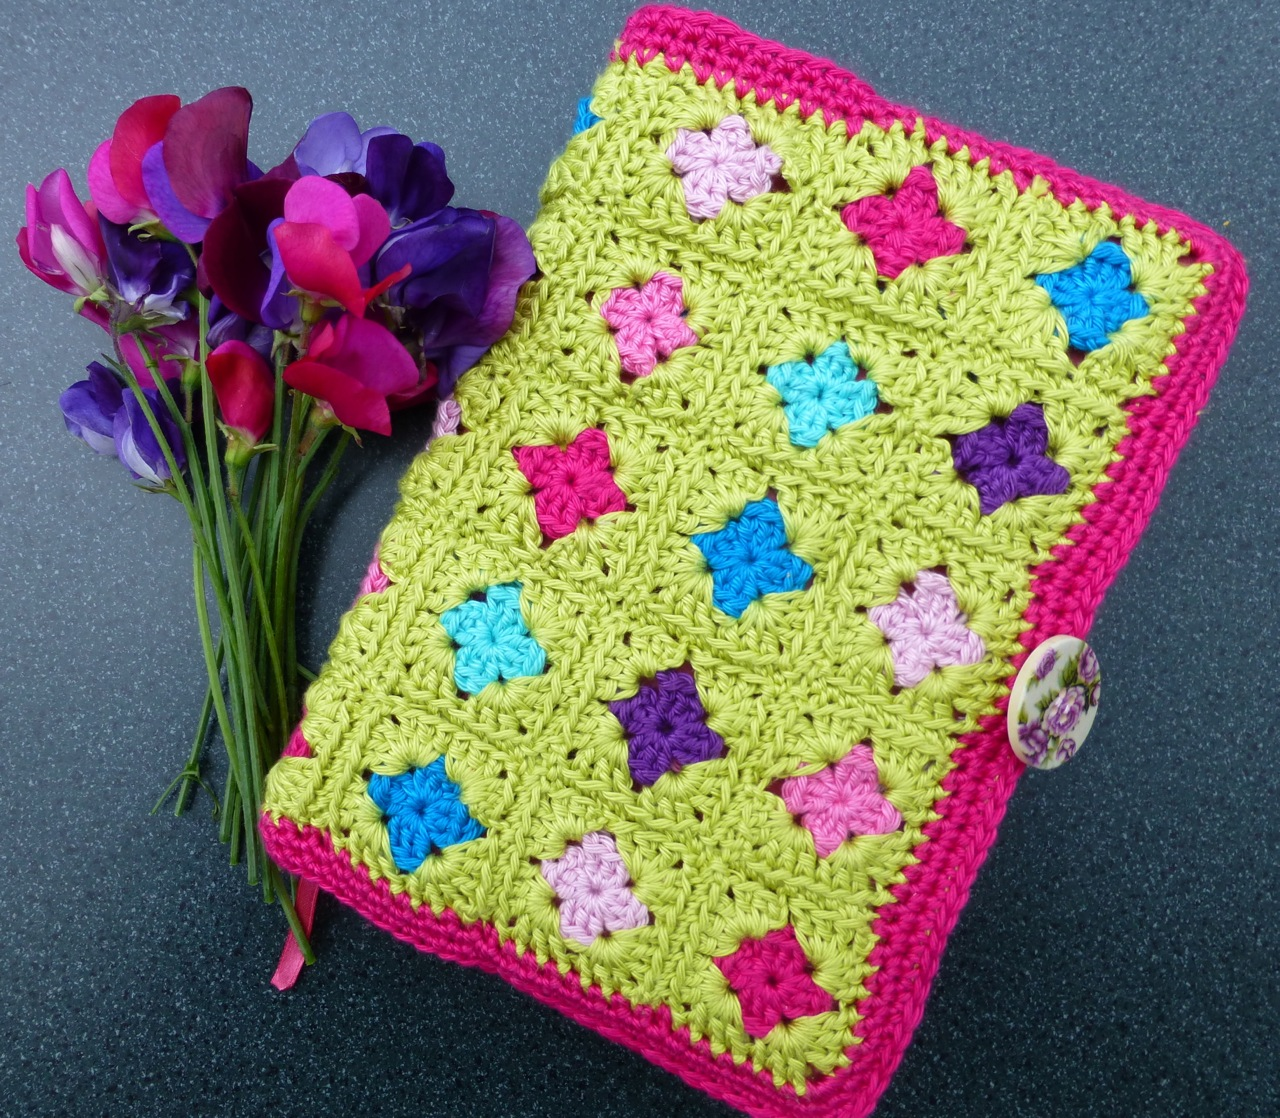 Book Cover Crochet Granny : Mrs thomasina tittlemouse granny square book cover